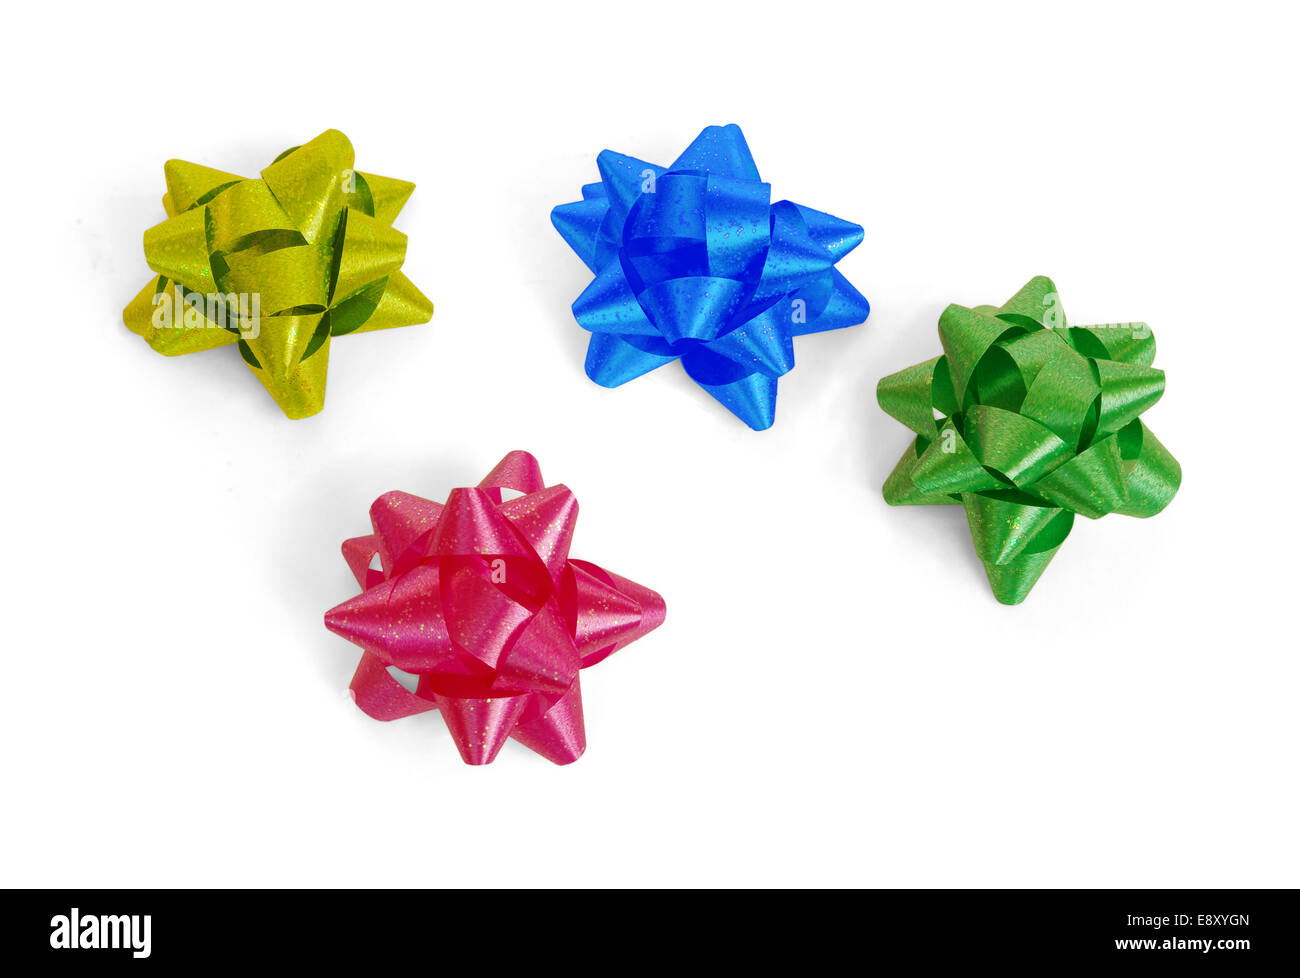 Colorful bows for decorating gifts - Stock Image